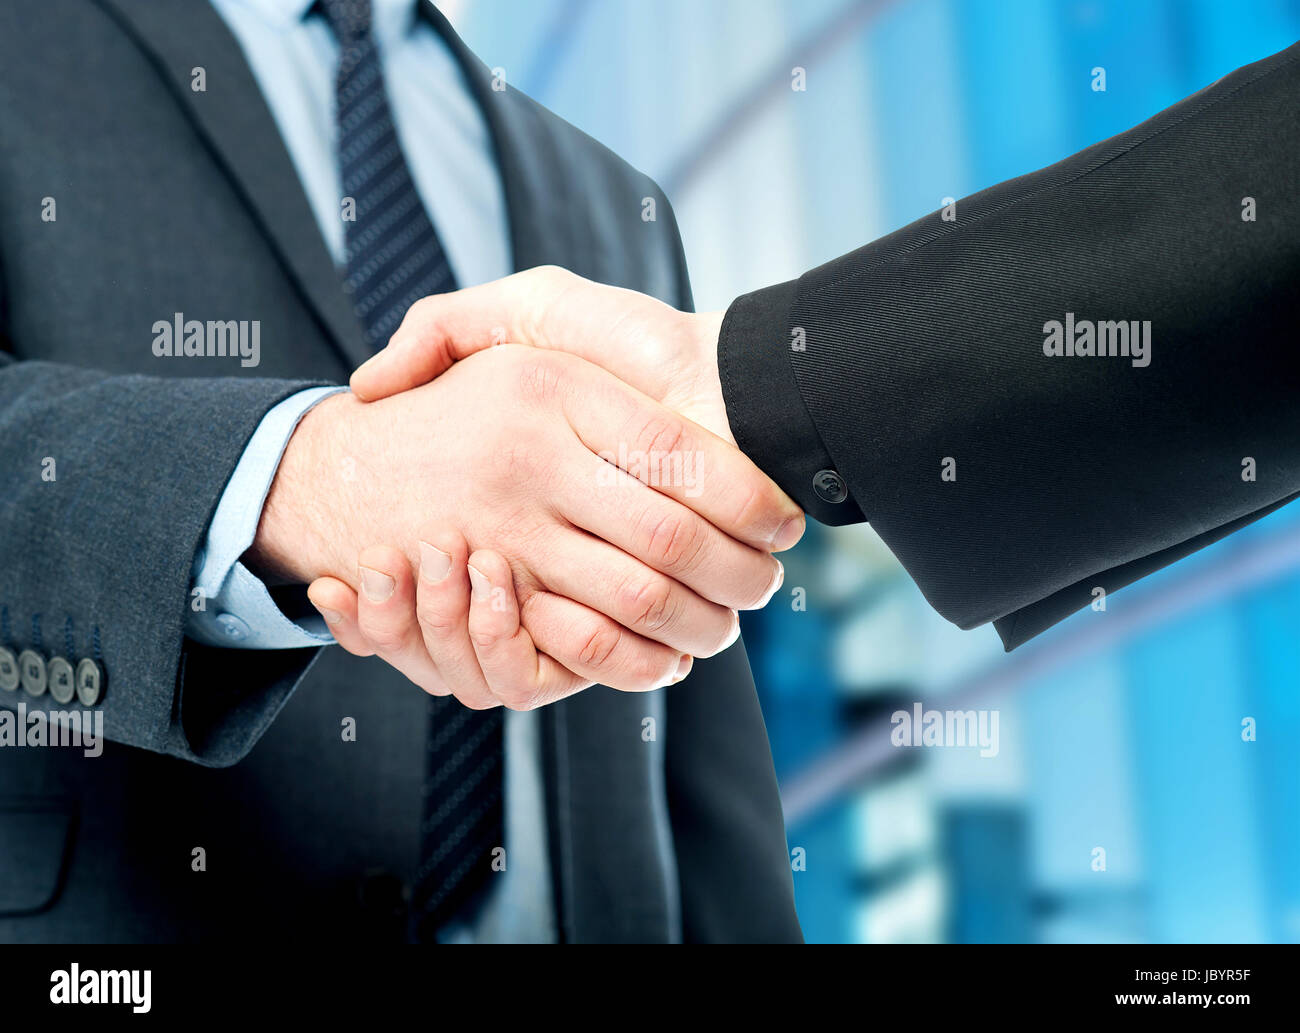 Business deal finalized, congratulations! Stock Photo